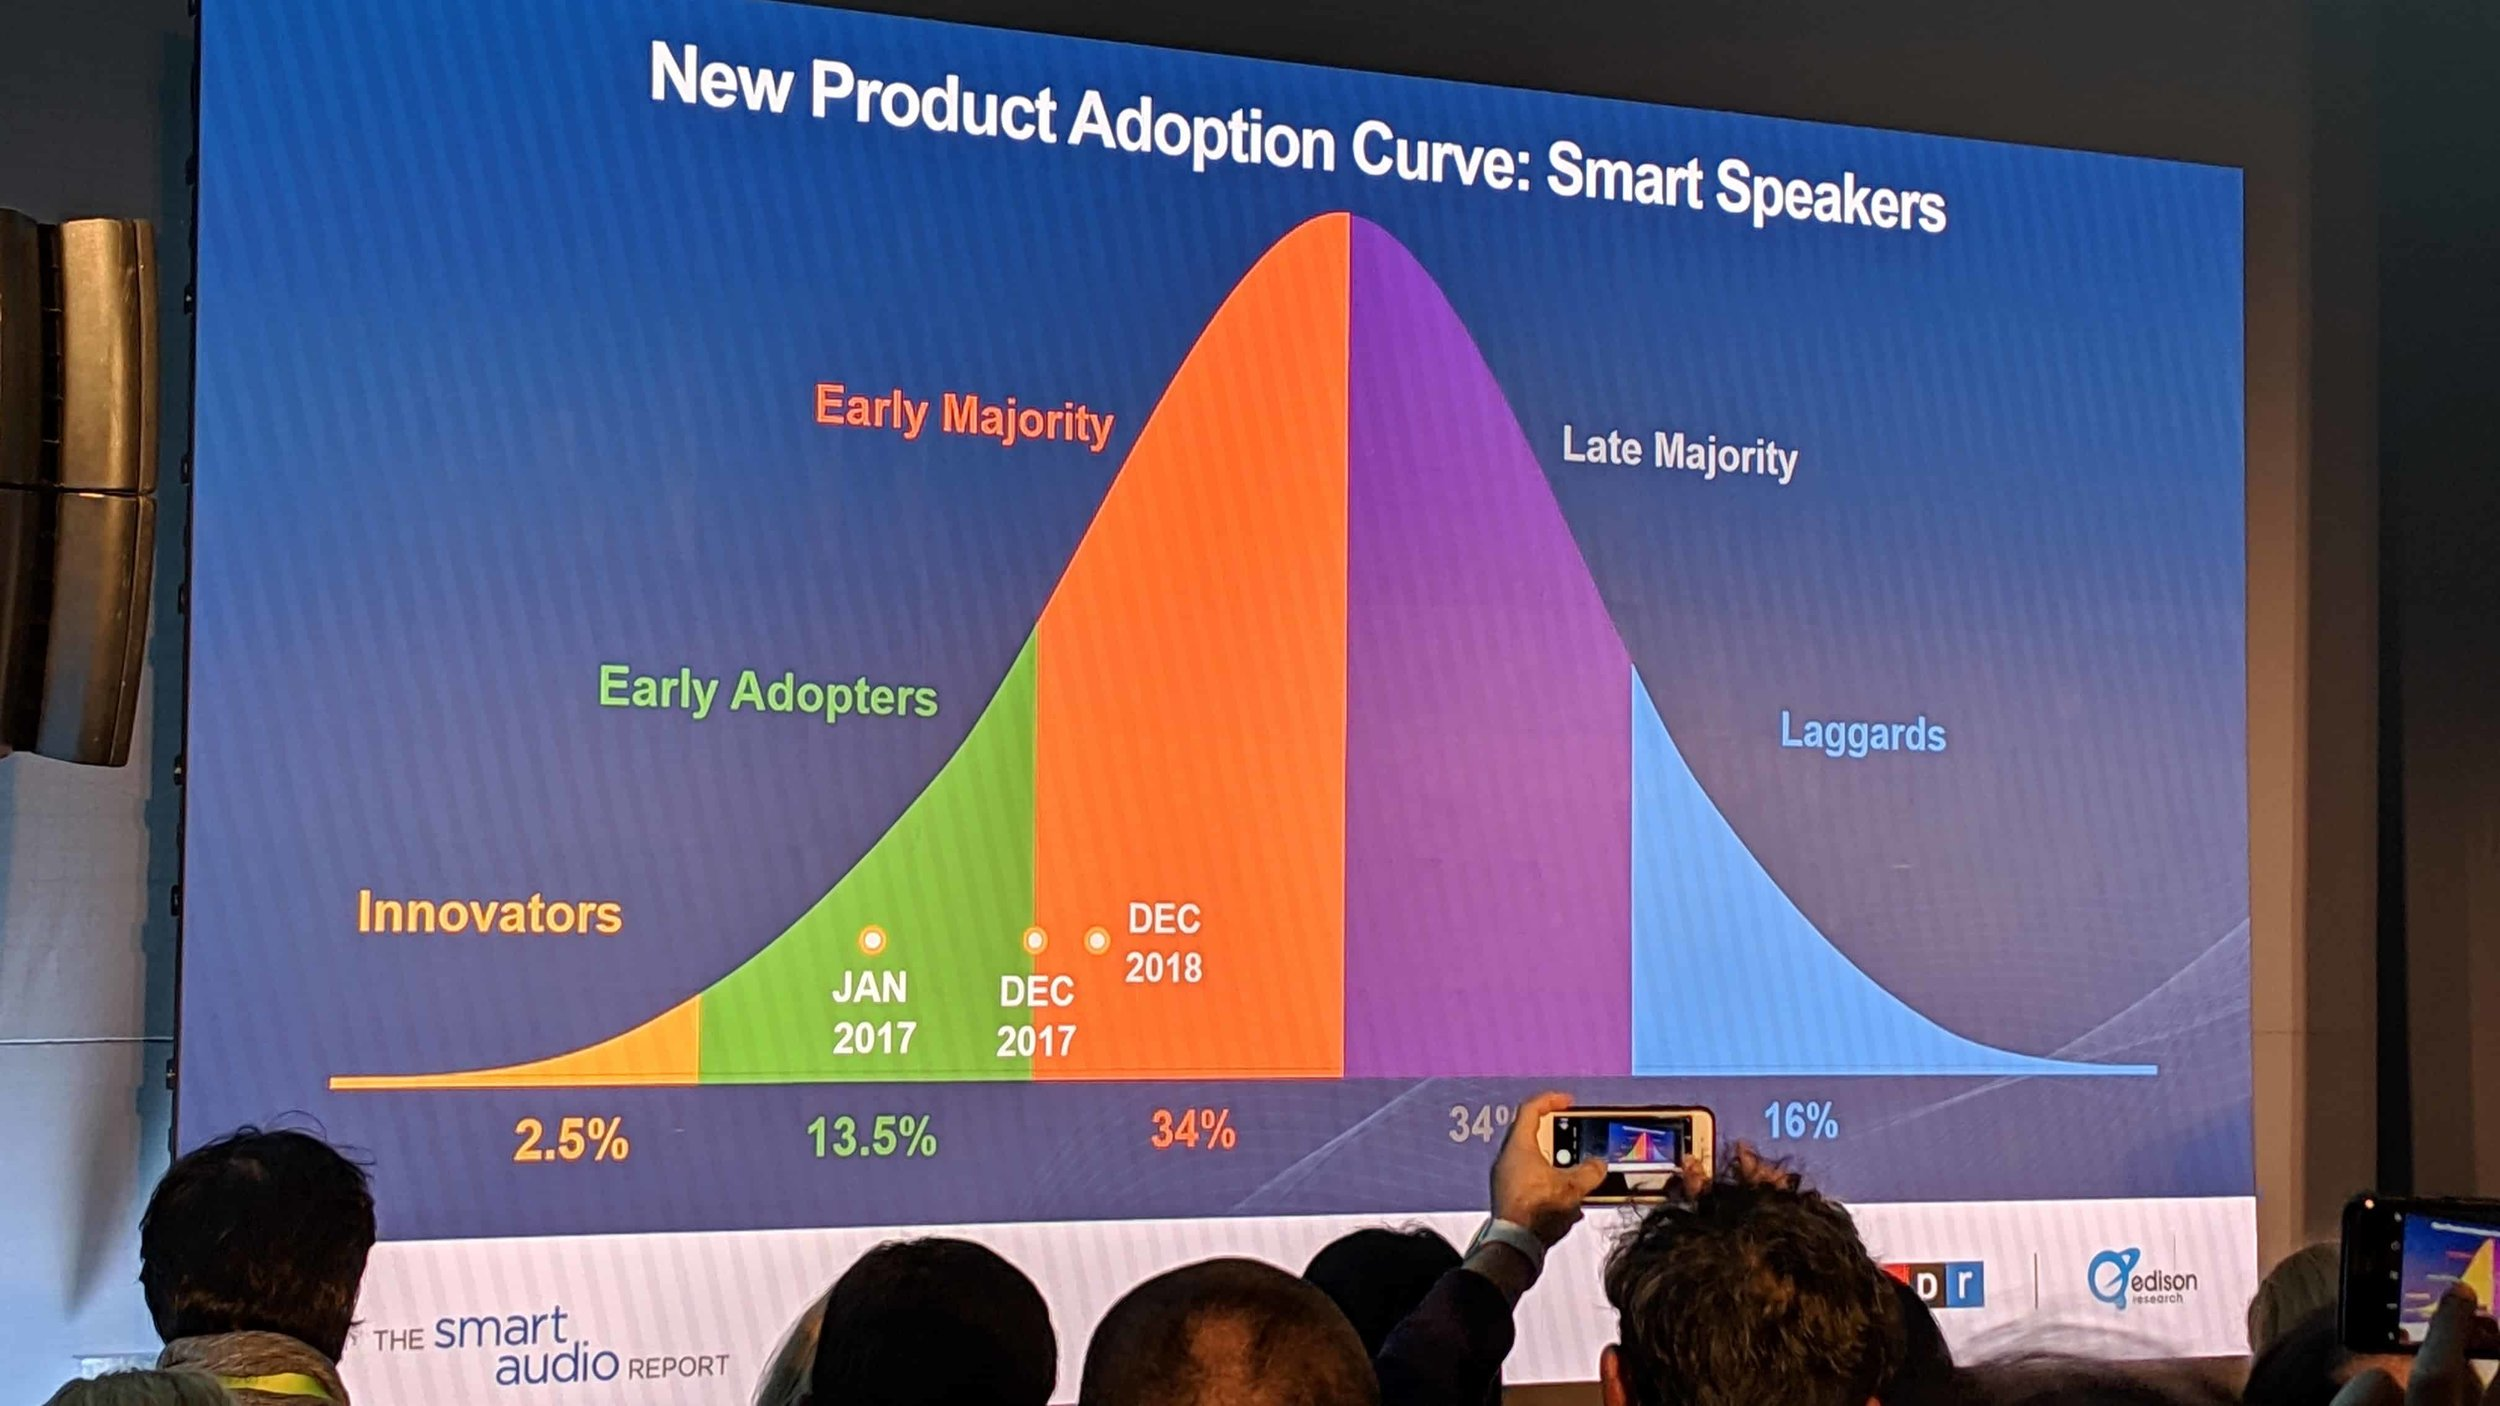 Smart Speakers expanding fast into the early majority market